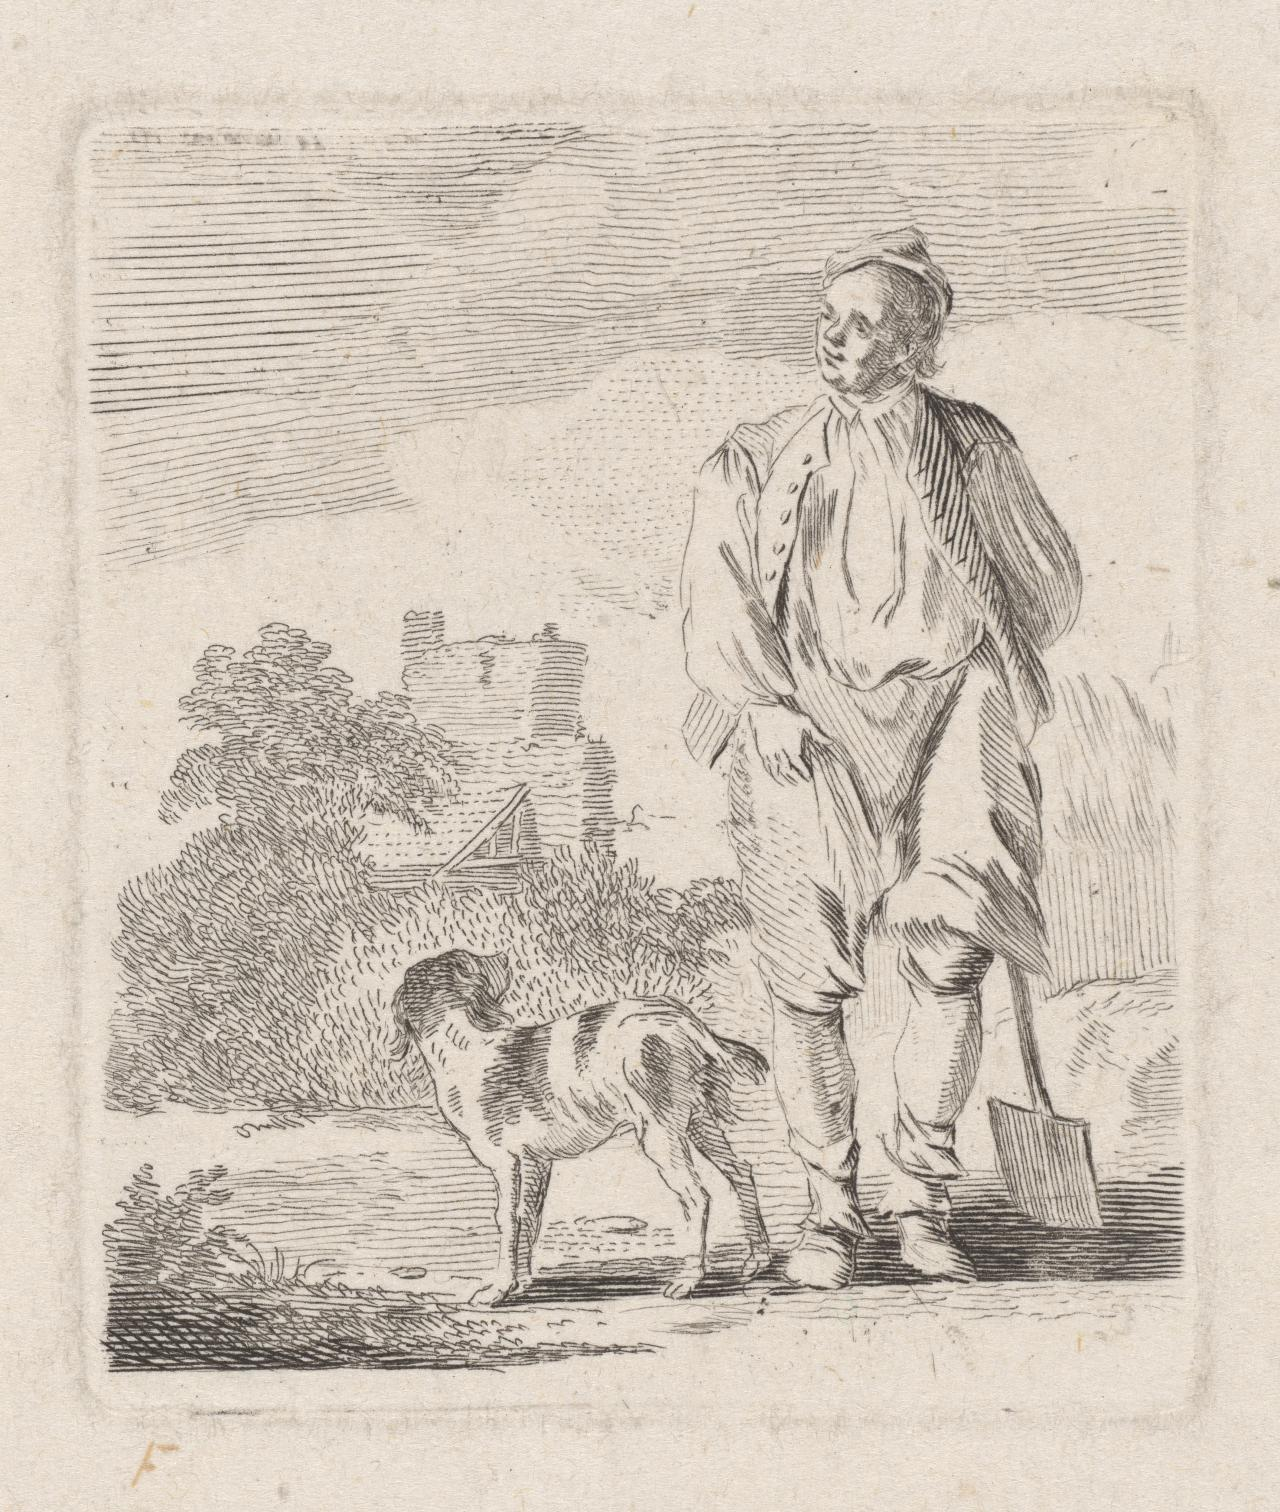 Man walking, carrying his hat (Figures in the background)